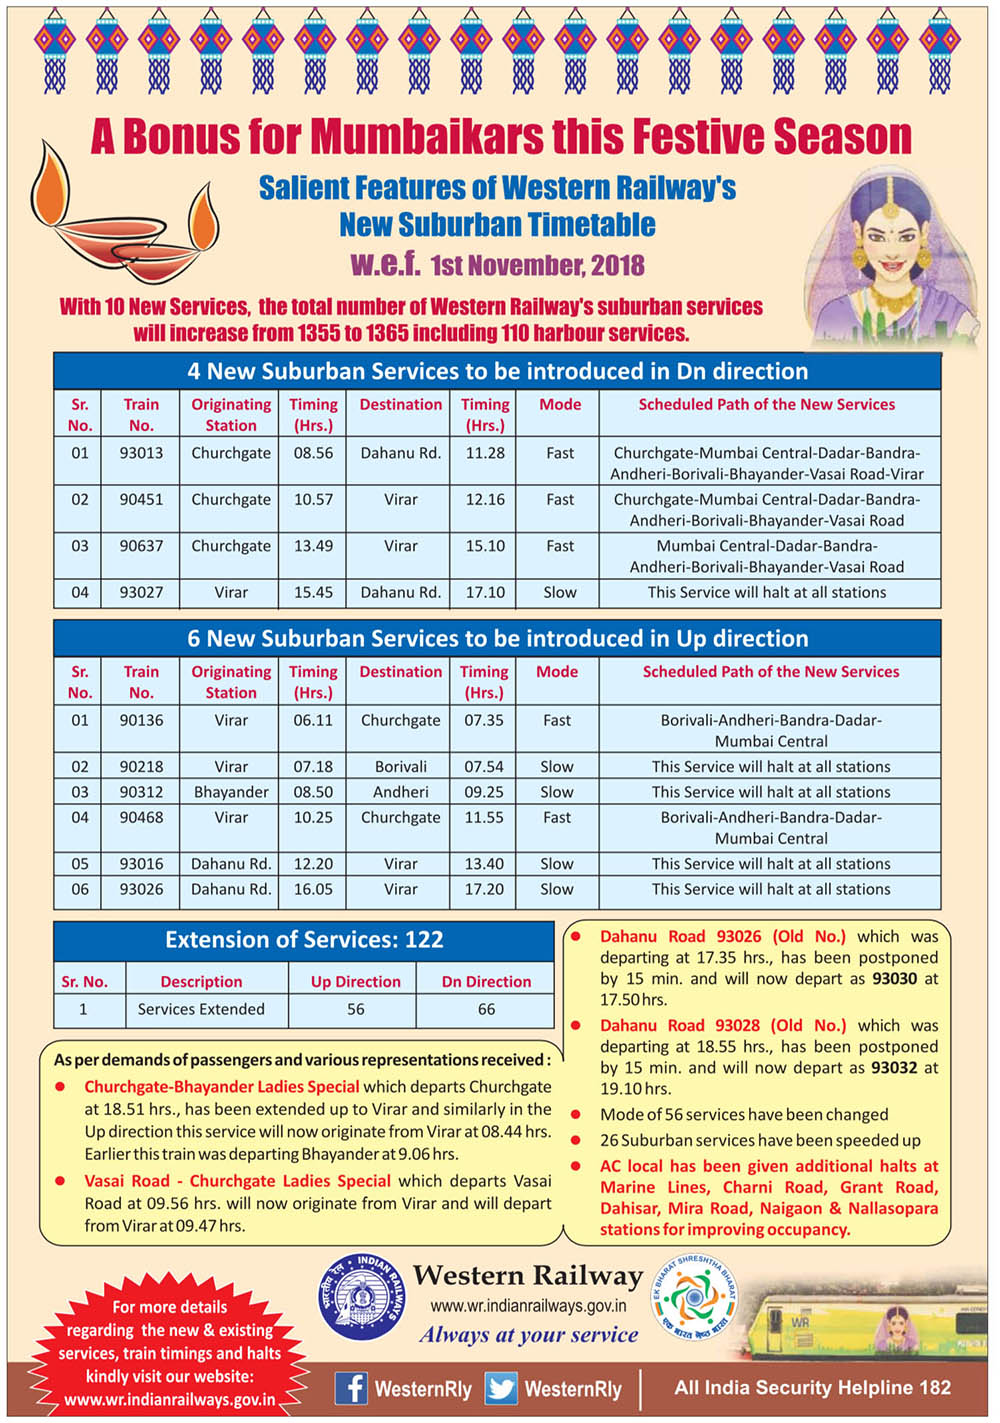 Western Railway New Timetable wef 1-Nov-2018